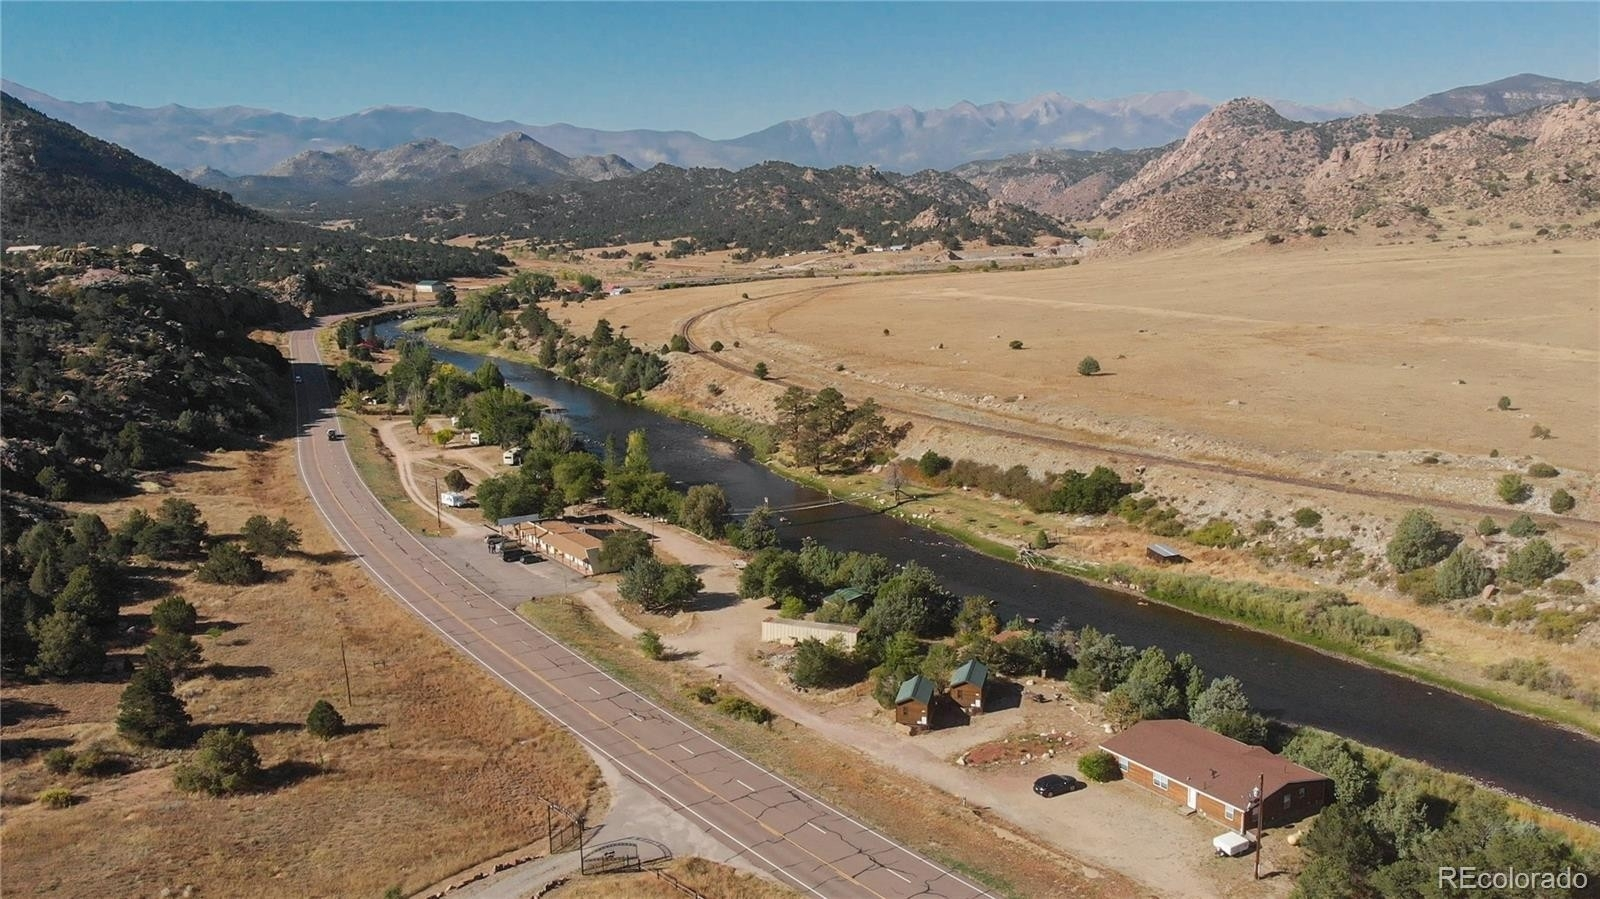 Comercial / Oficina por un Venta en Texas Creek, CO 81223